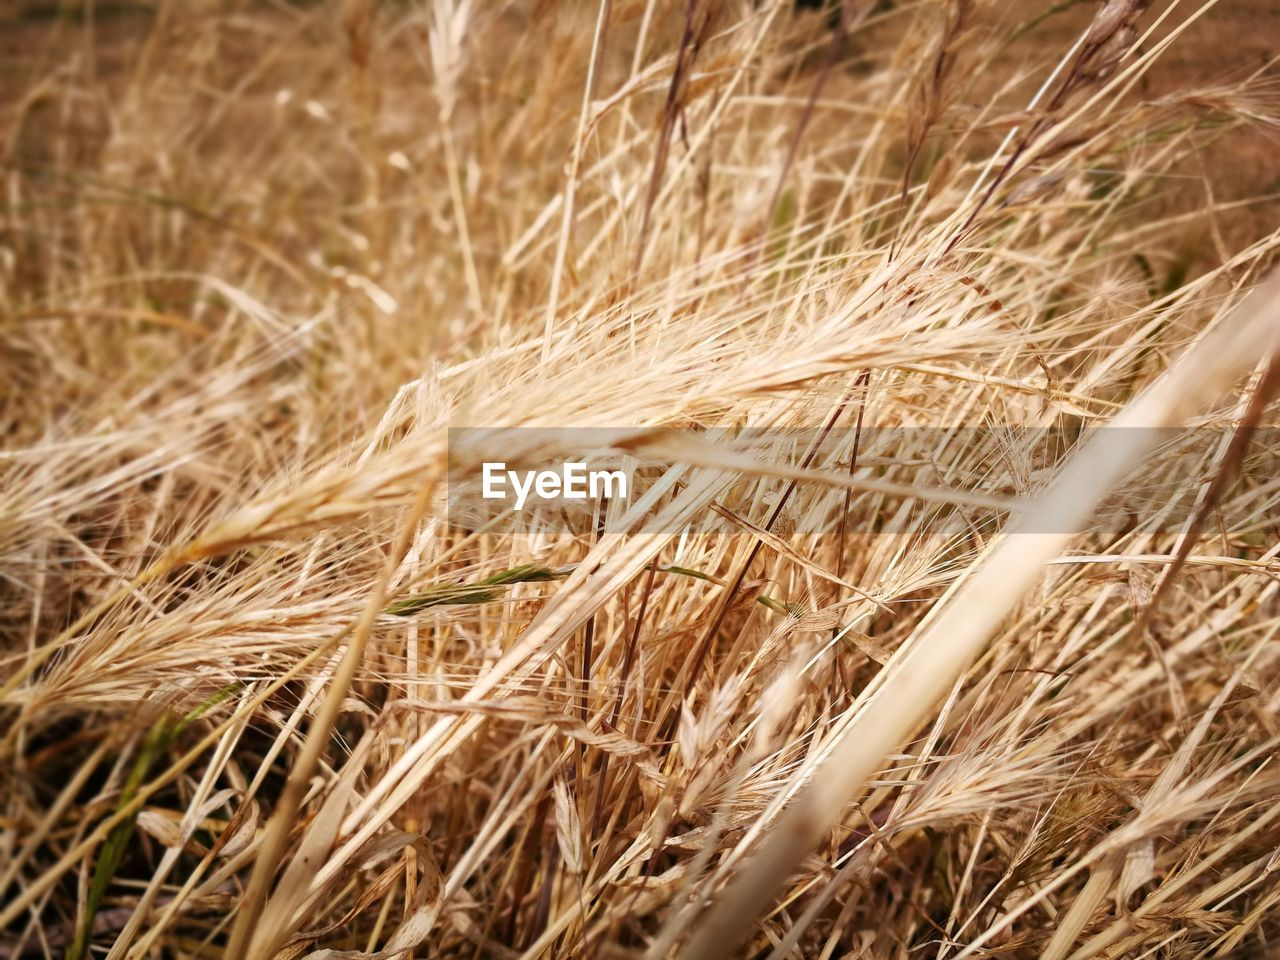 cereal plant, agriculture, wheat, crop, growth, field, nature, straw, farm, ear of wheat, plant, rural scene, grass, no people, outdoors, rye - grain, day, close-up, timothy grass, beauty in nature